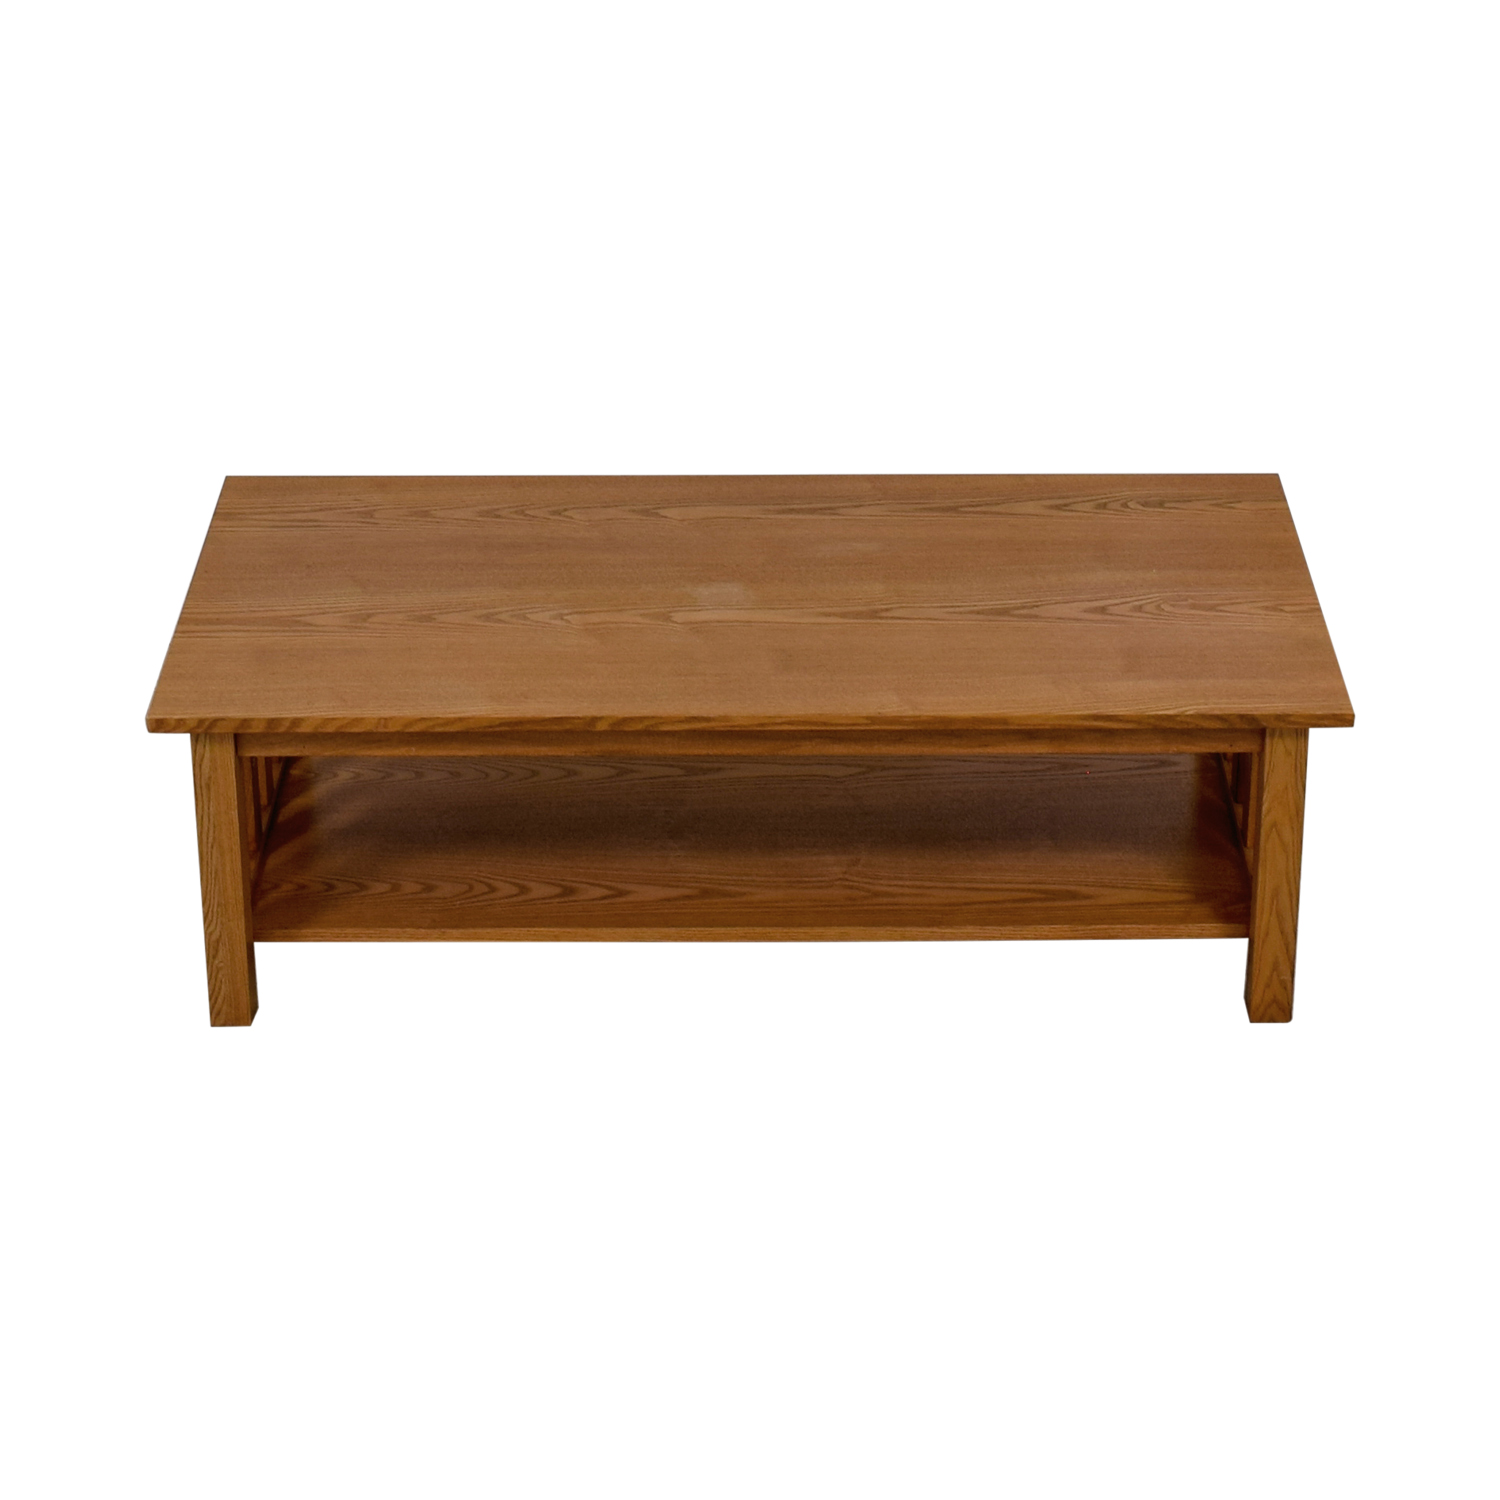 Mission Style Coffee Table dimensions